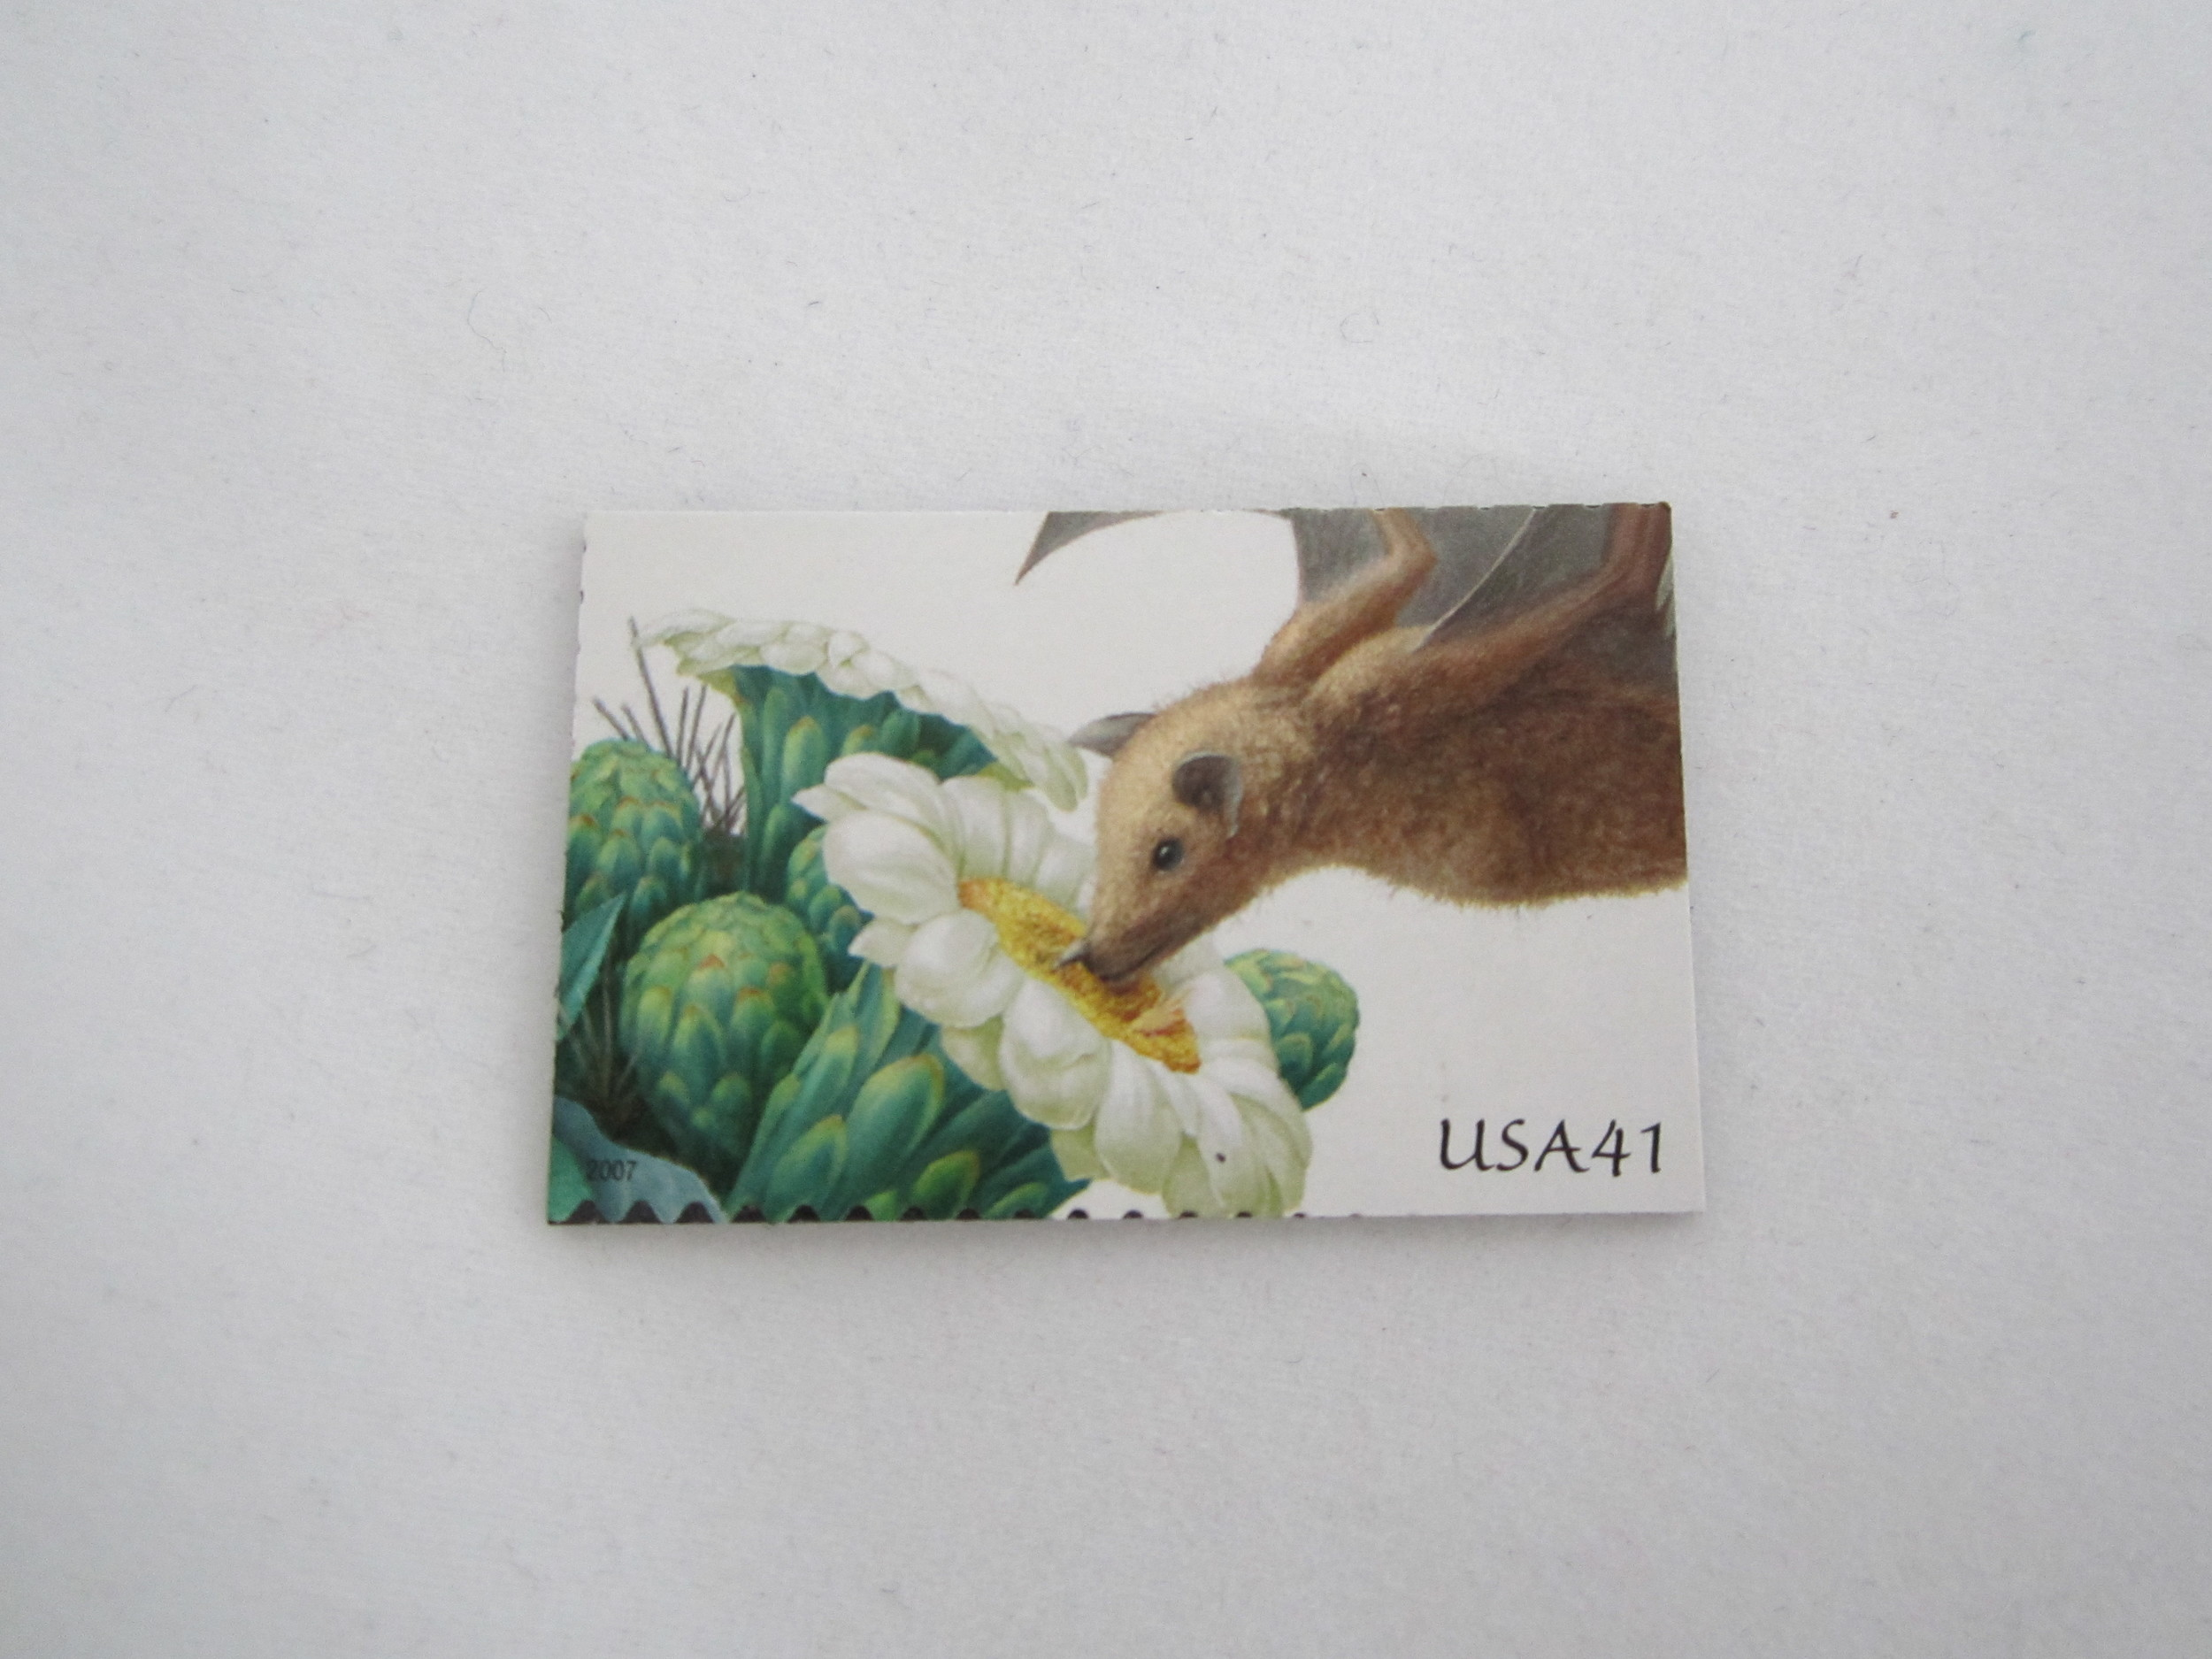 Fruit Bat Stamp Magnet 2.JPG